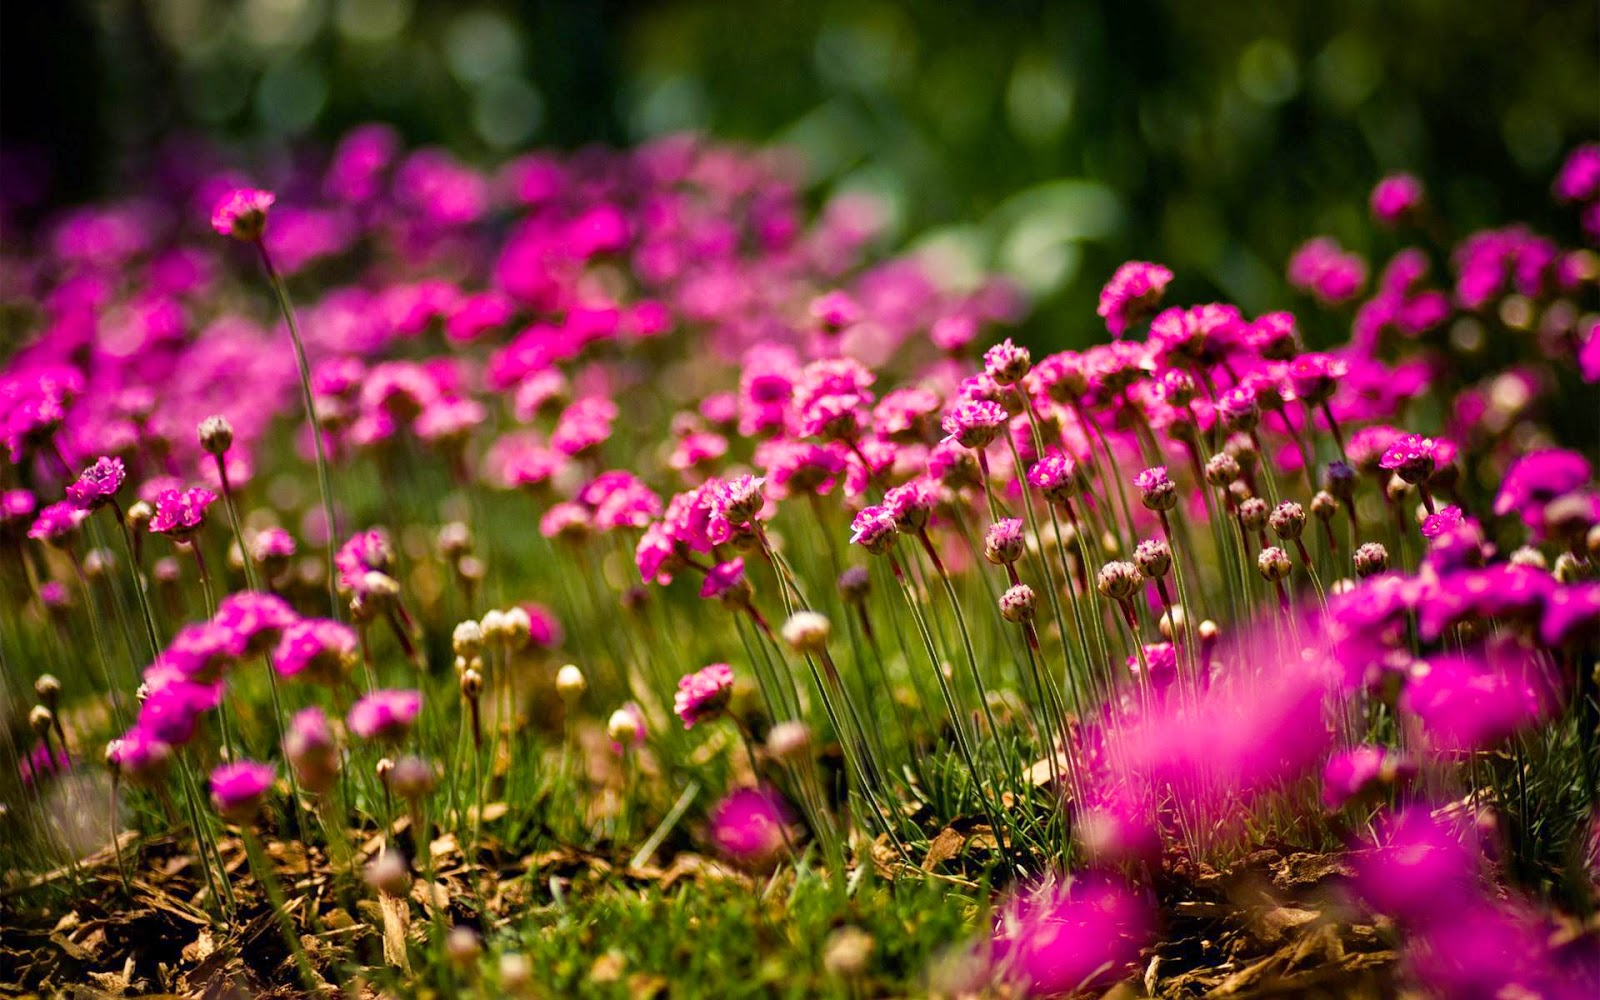 sunny nature flowers field wallpapers hd wallpapers